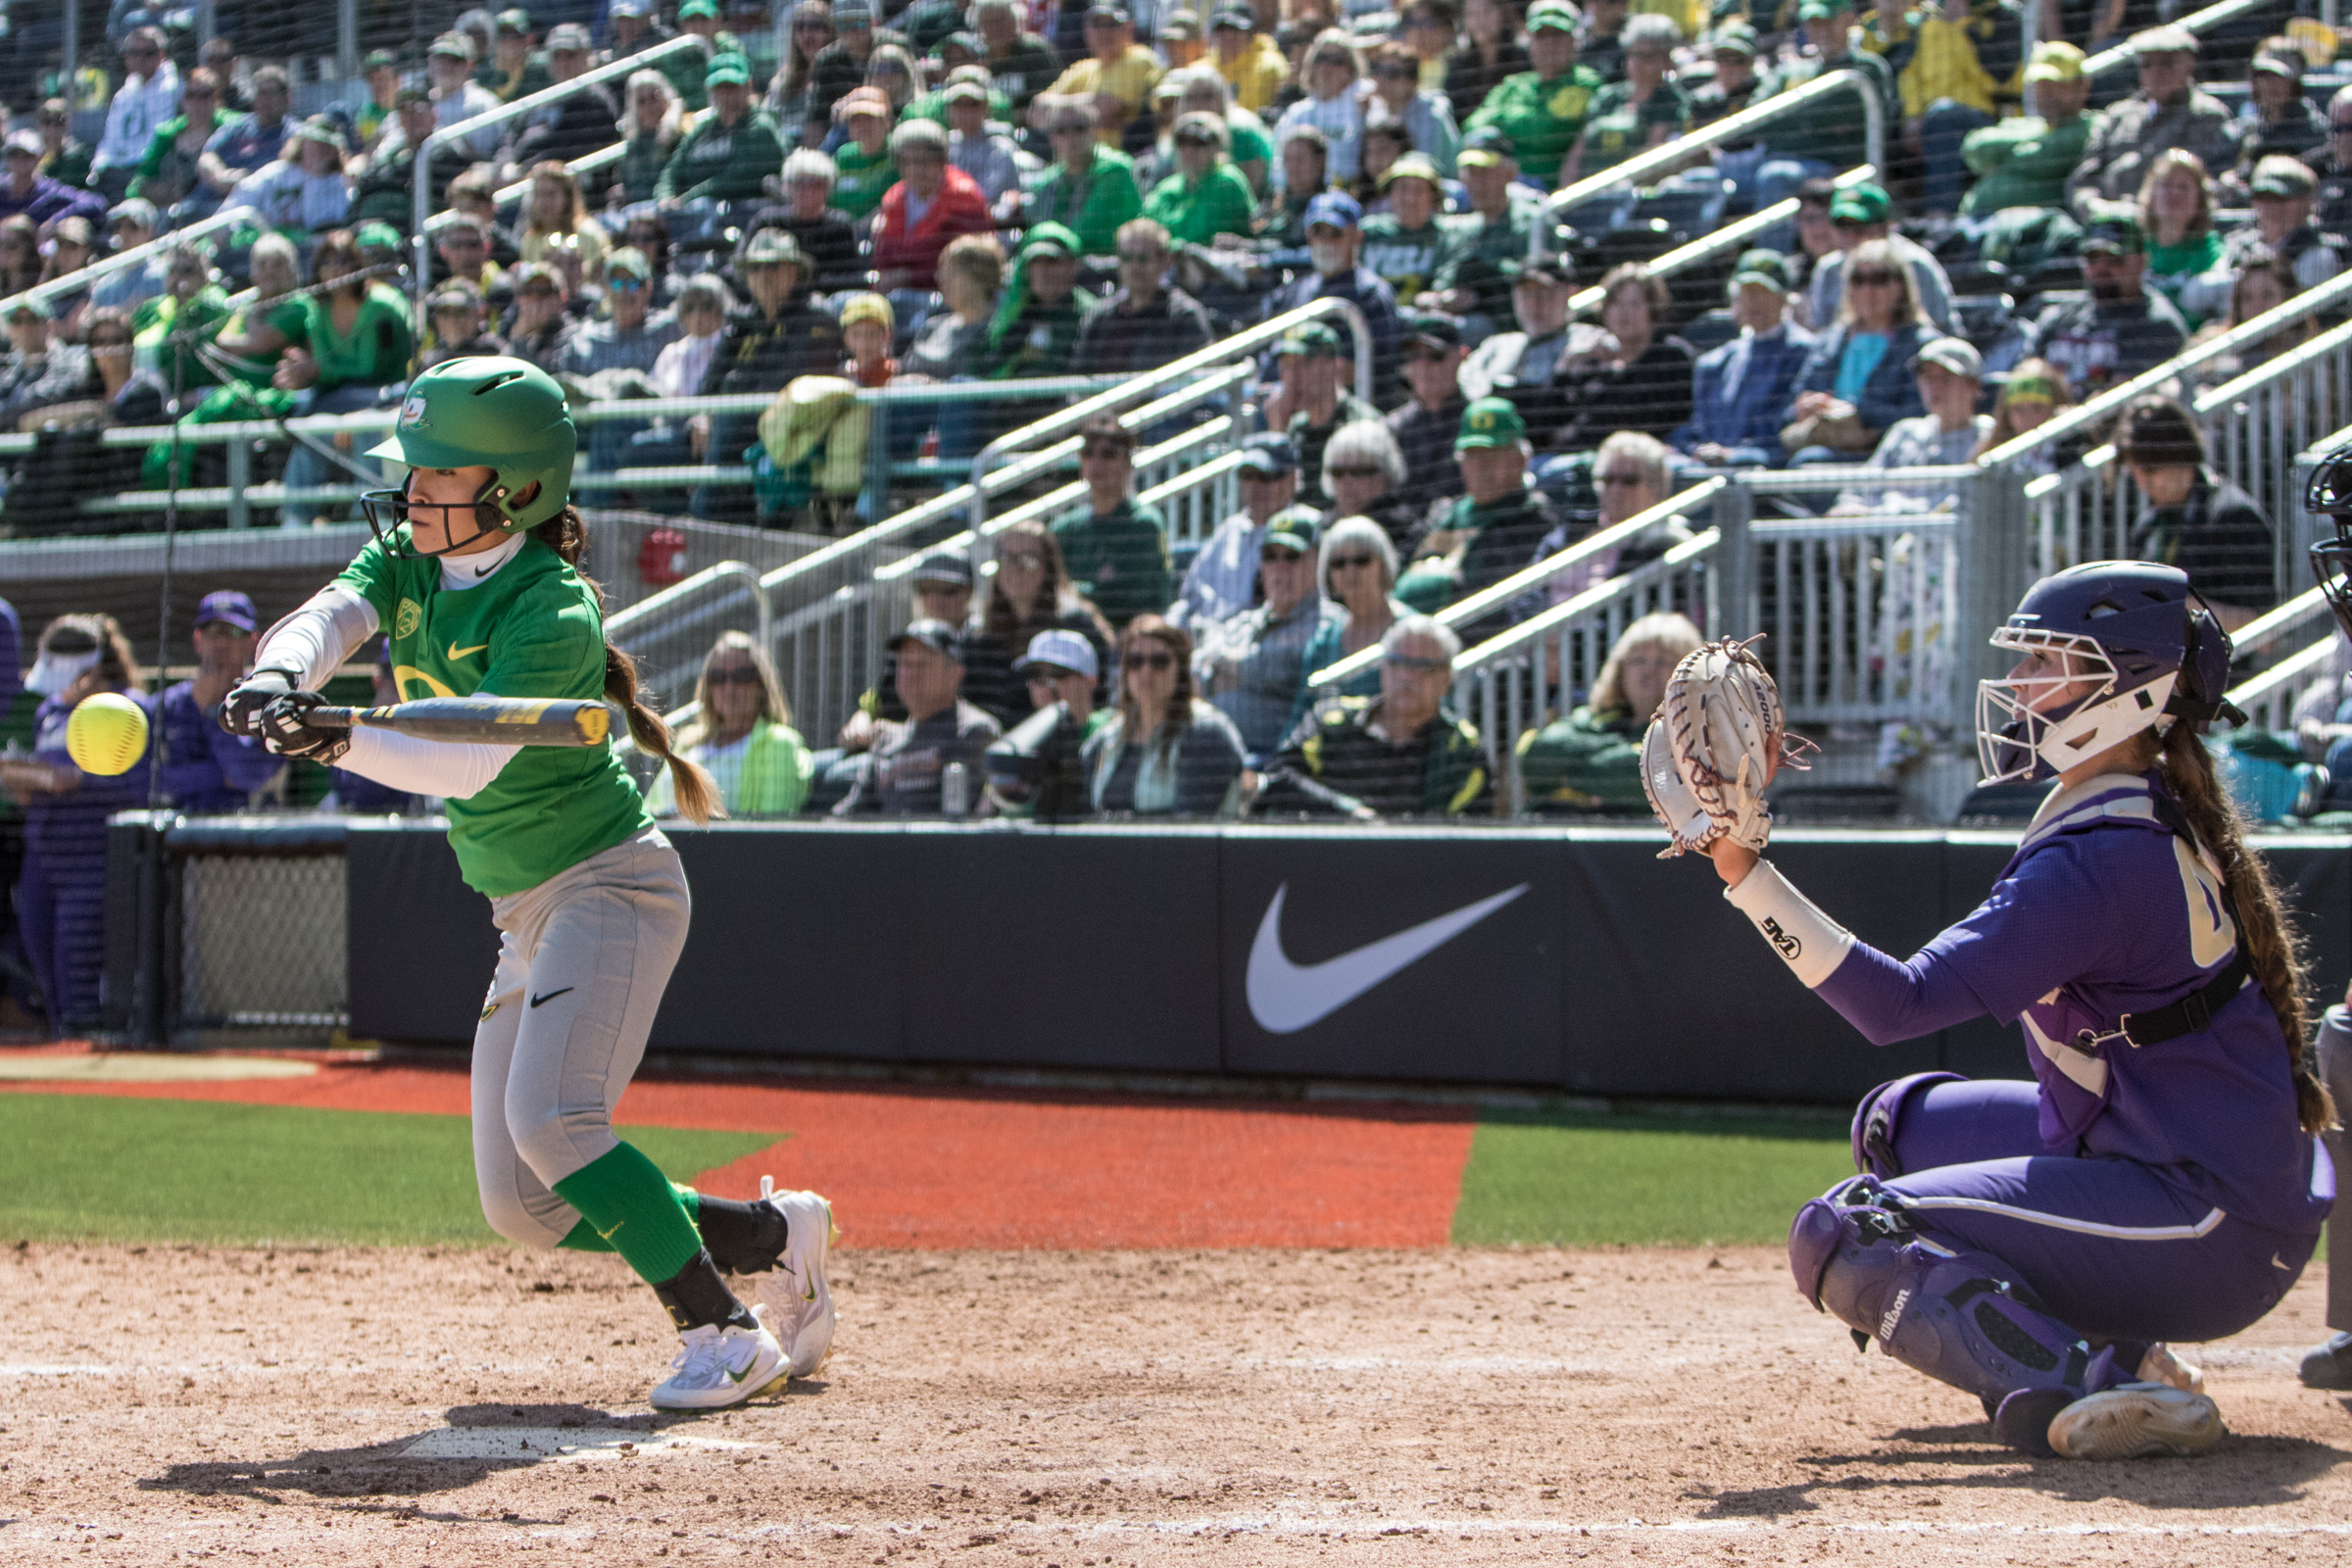 Oregon Ducks outfielder Sammie Puentes (#5) hits the ball along the third base line in the bottom of the ninth inning where a Washington infielder snatched it for the out.  In the final game of a three-game series, the University of Washington Huskies defeated the Oregon Ducks 5-3.  The Ducks led through the bottom of the 7th inning, but Washington's Morganne Flores (#47) tied it up with a two-run double.  Flores drove in two more runs in the 9th to take the lead.  Photo by Austin Hicks, Oregon News Lab